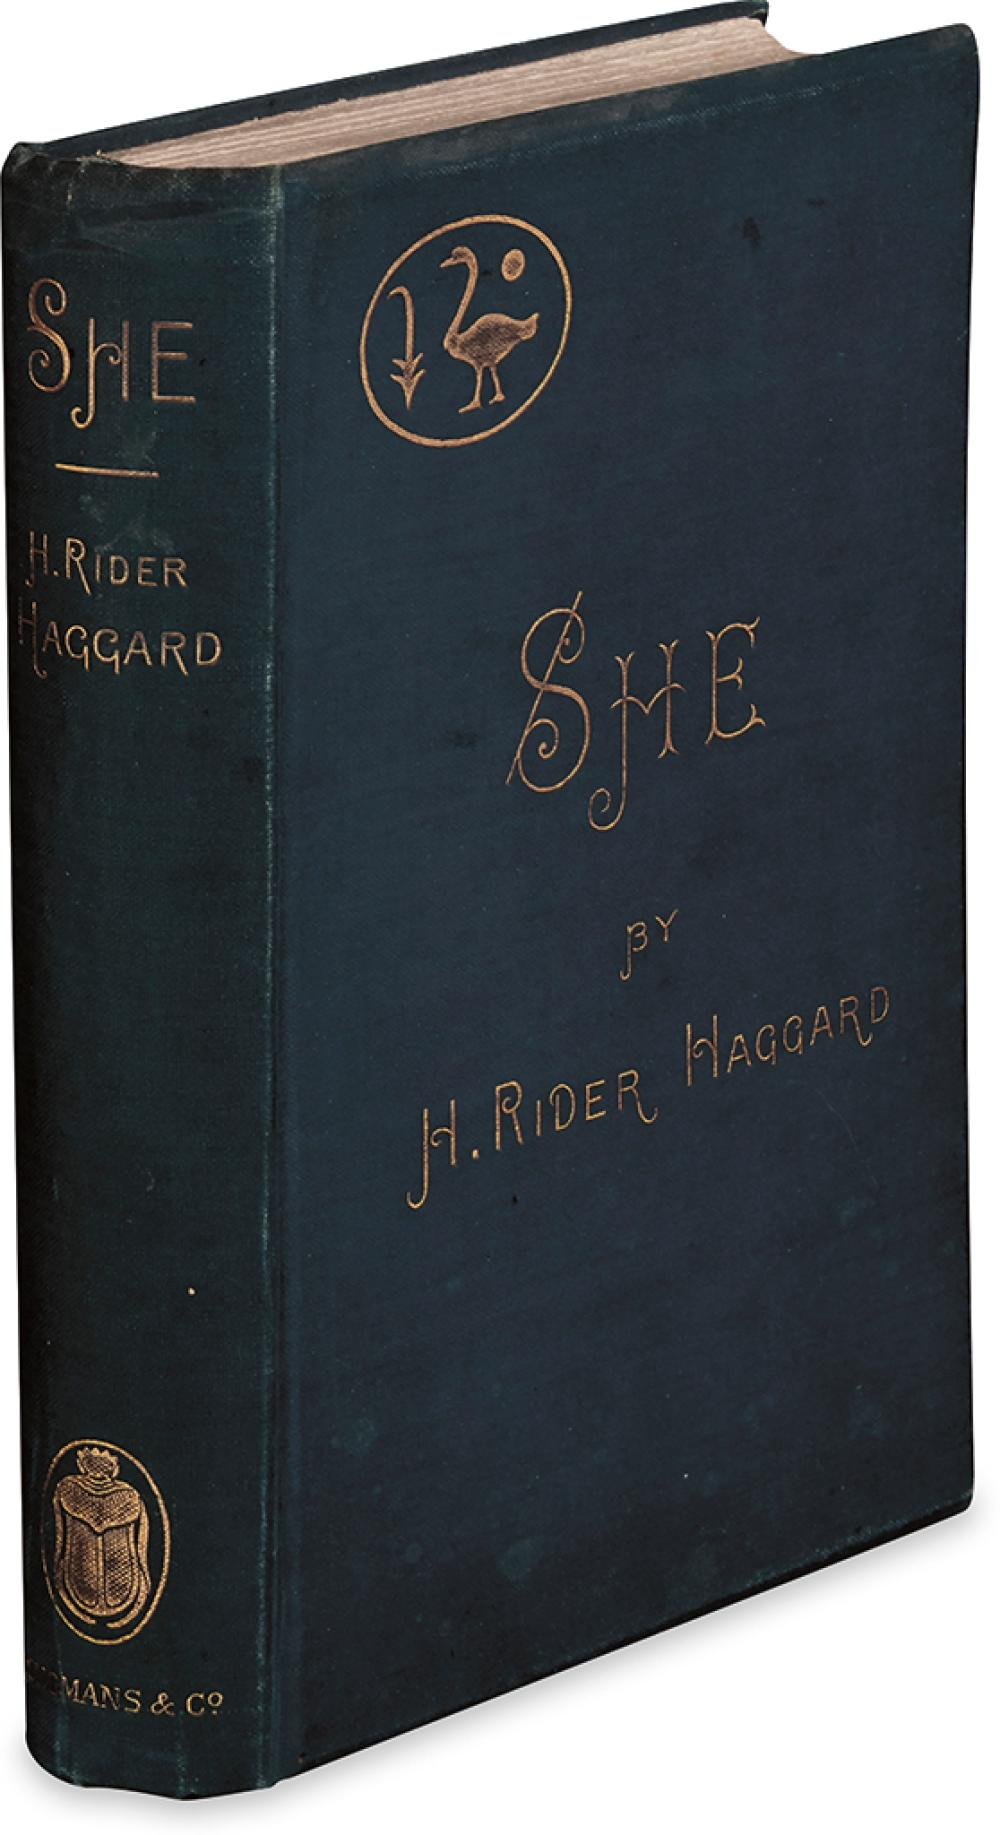 HAGGARD, H. RIDER. She. A History of Adventure.